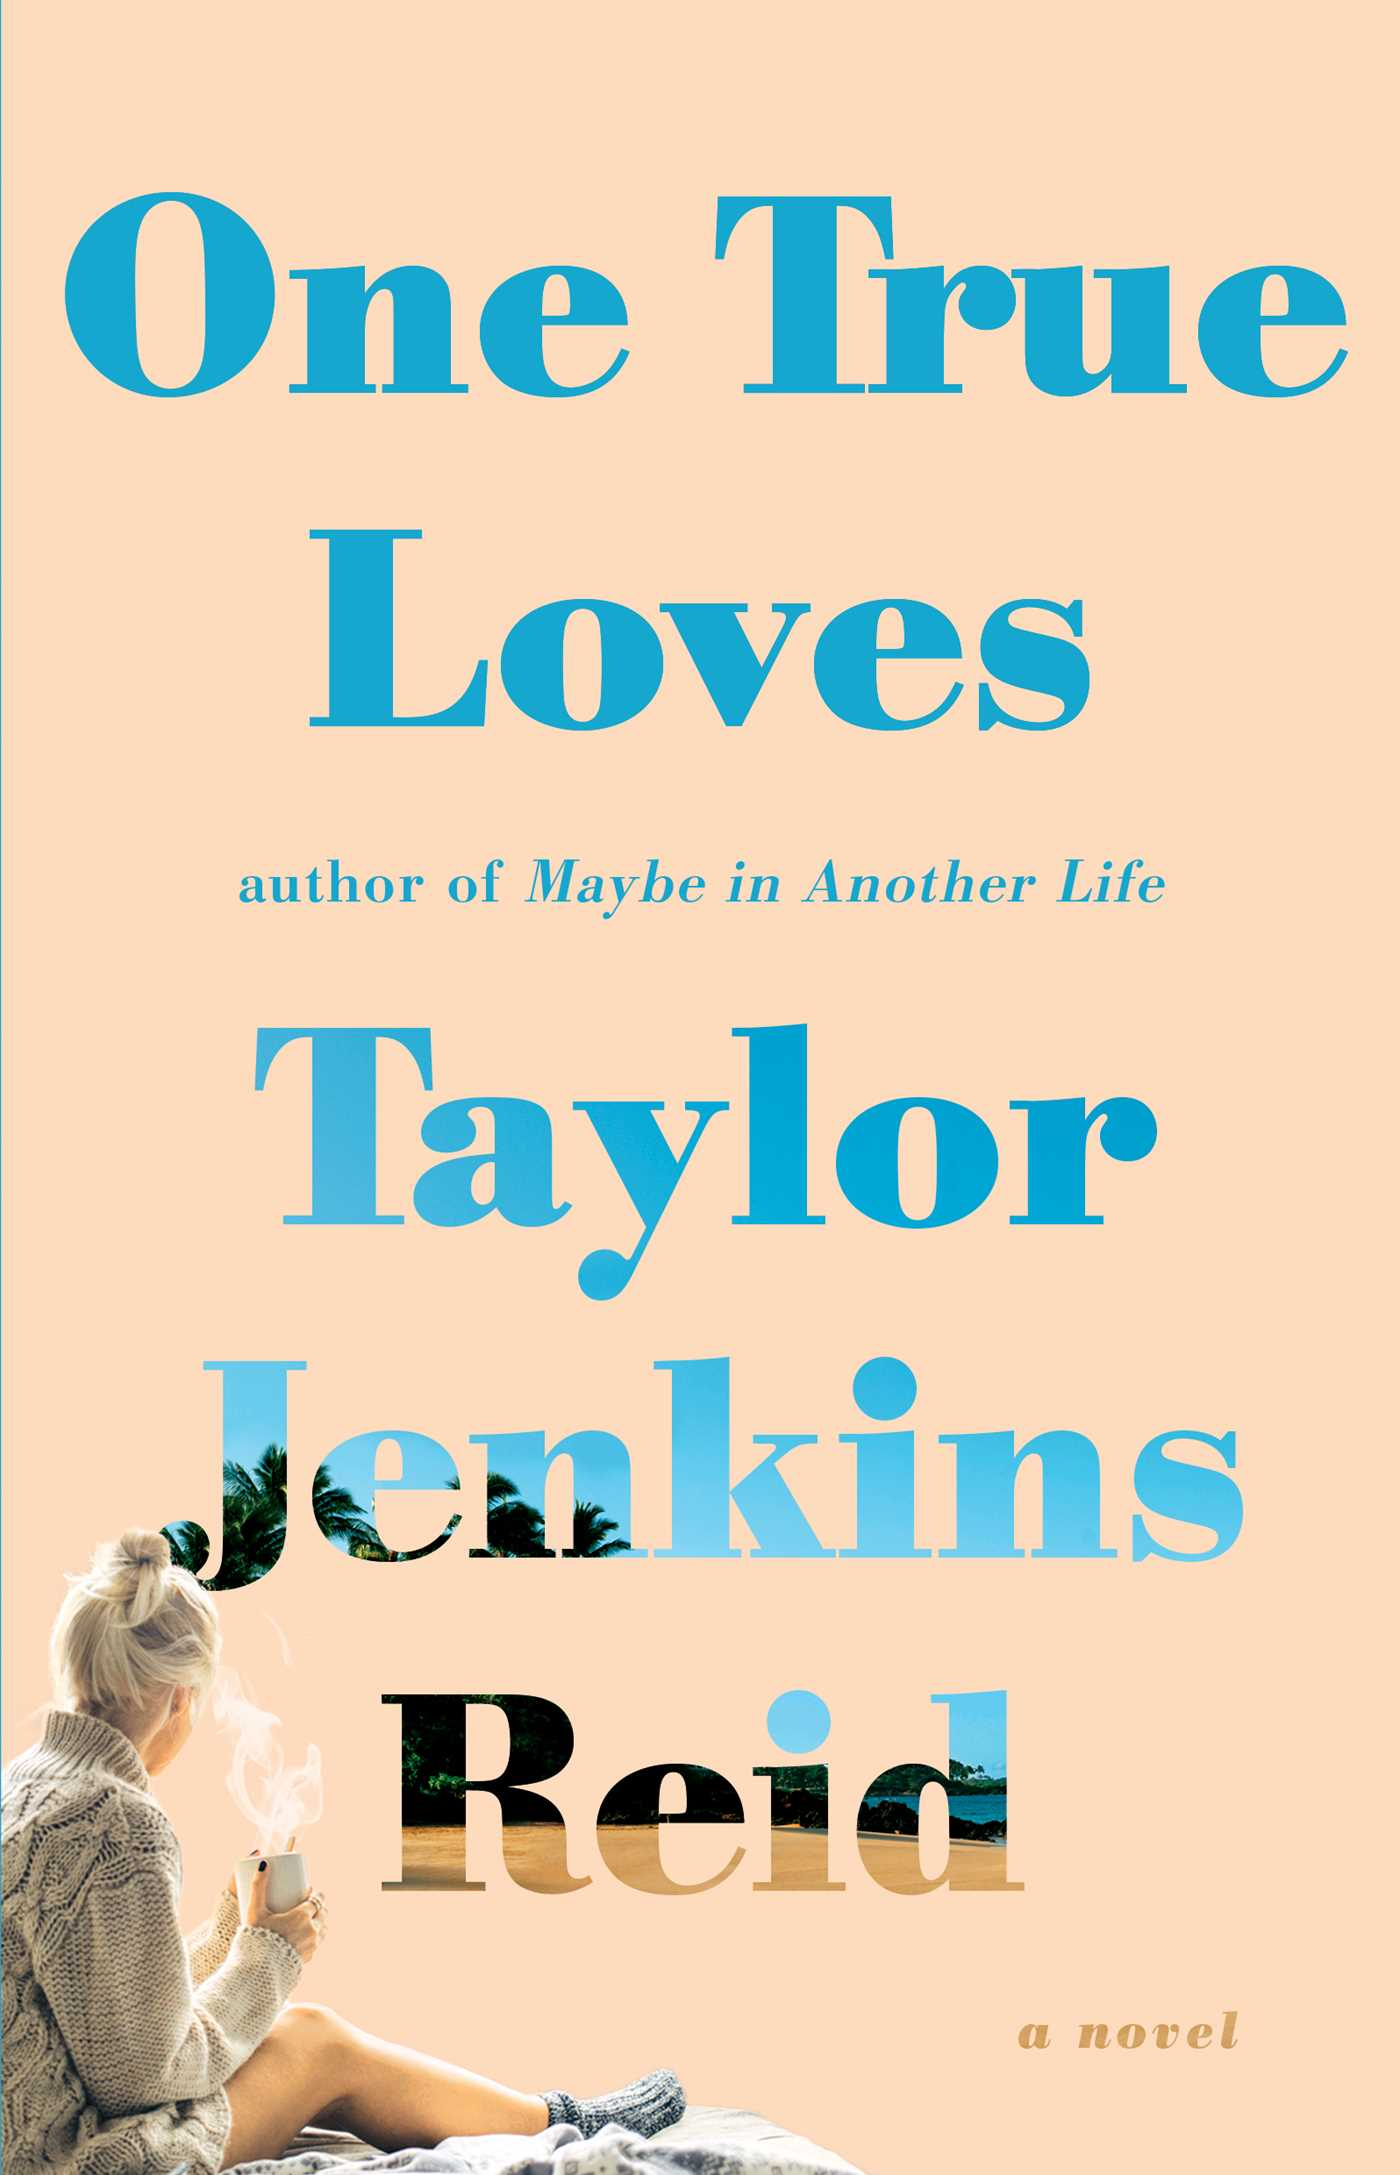 One True Loves by Taylor Jenkins Reid Blog Tour 5 STARS Review